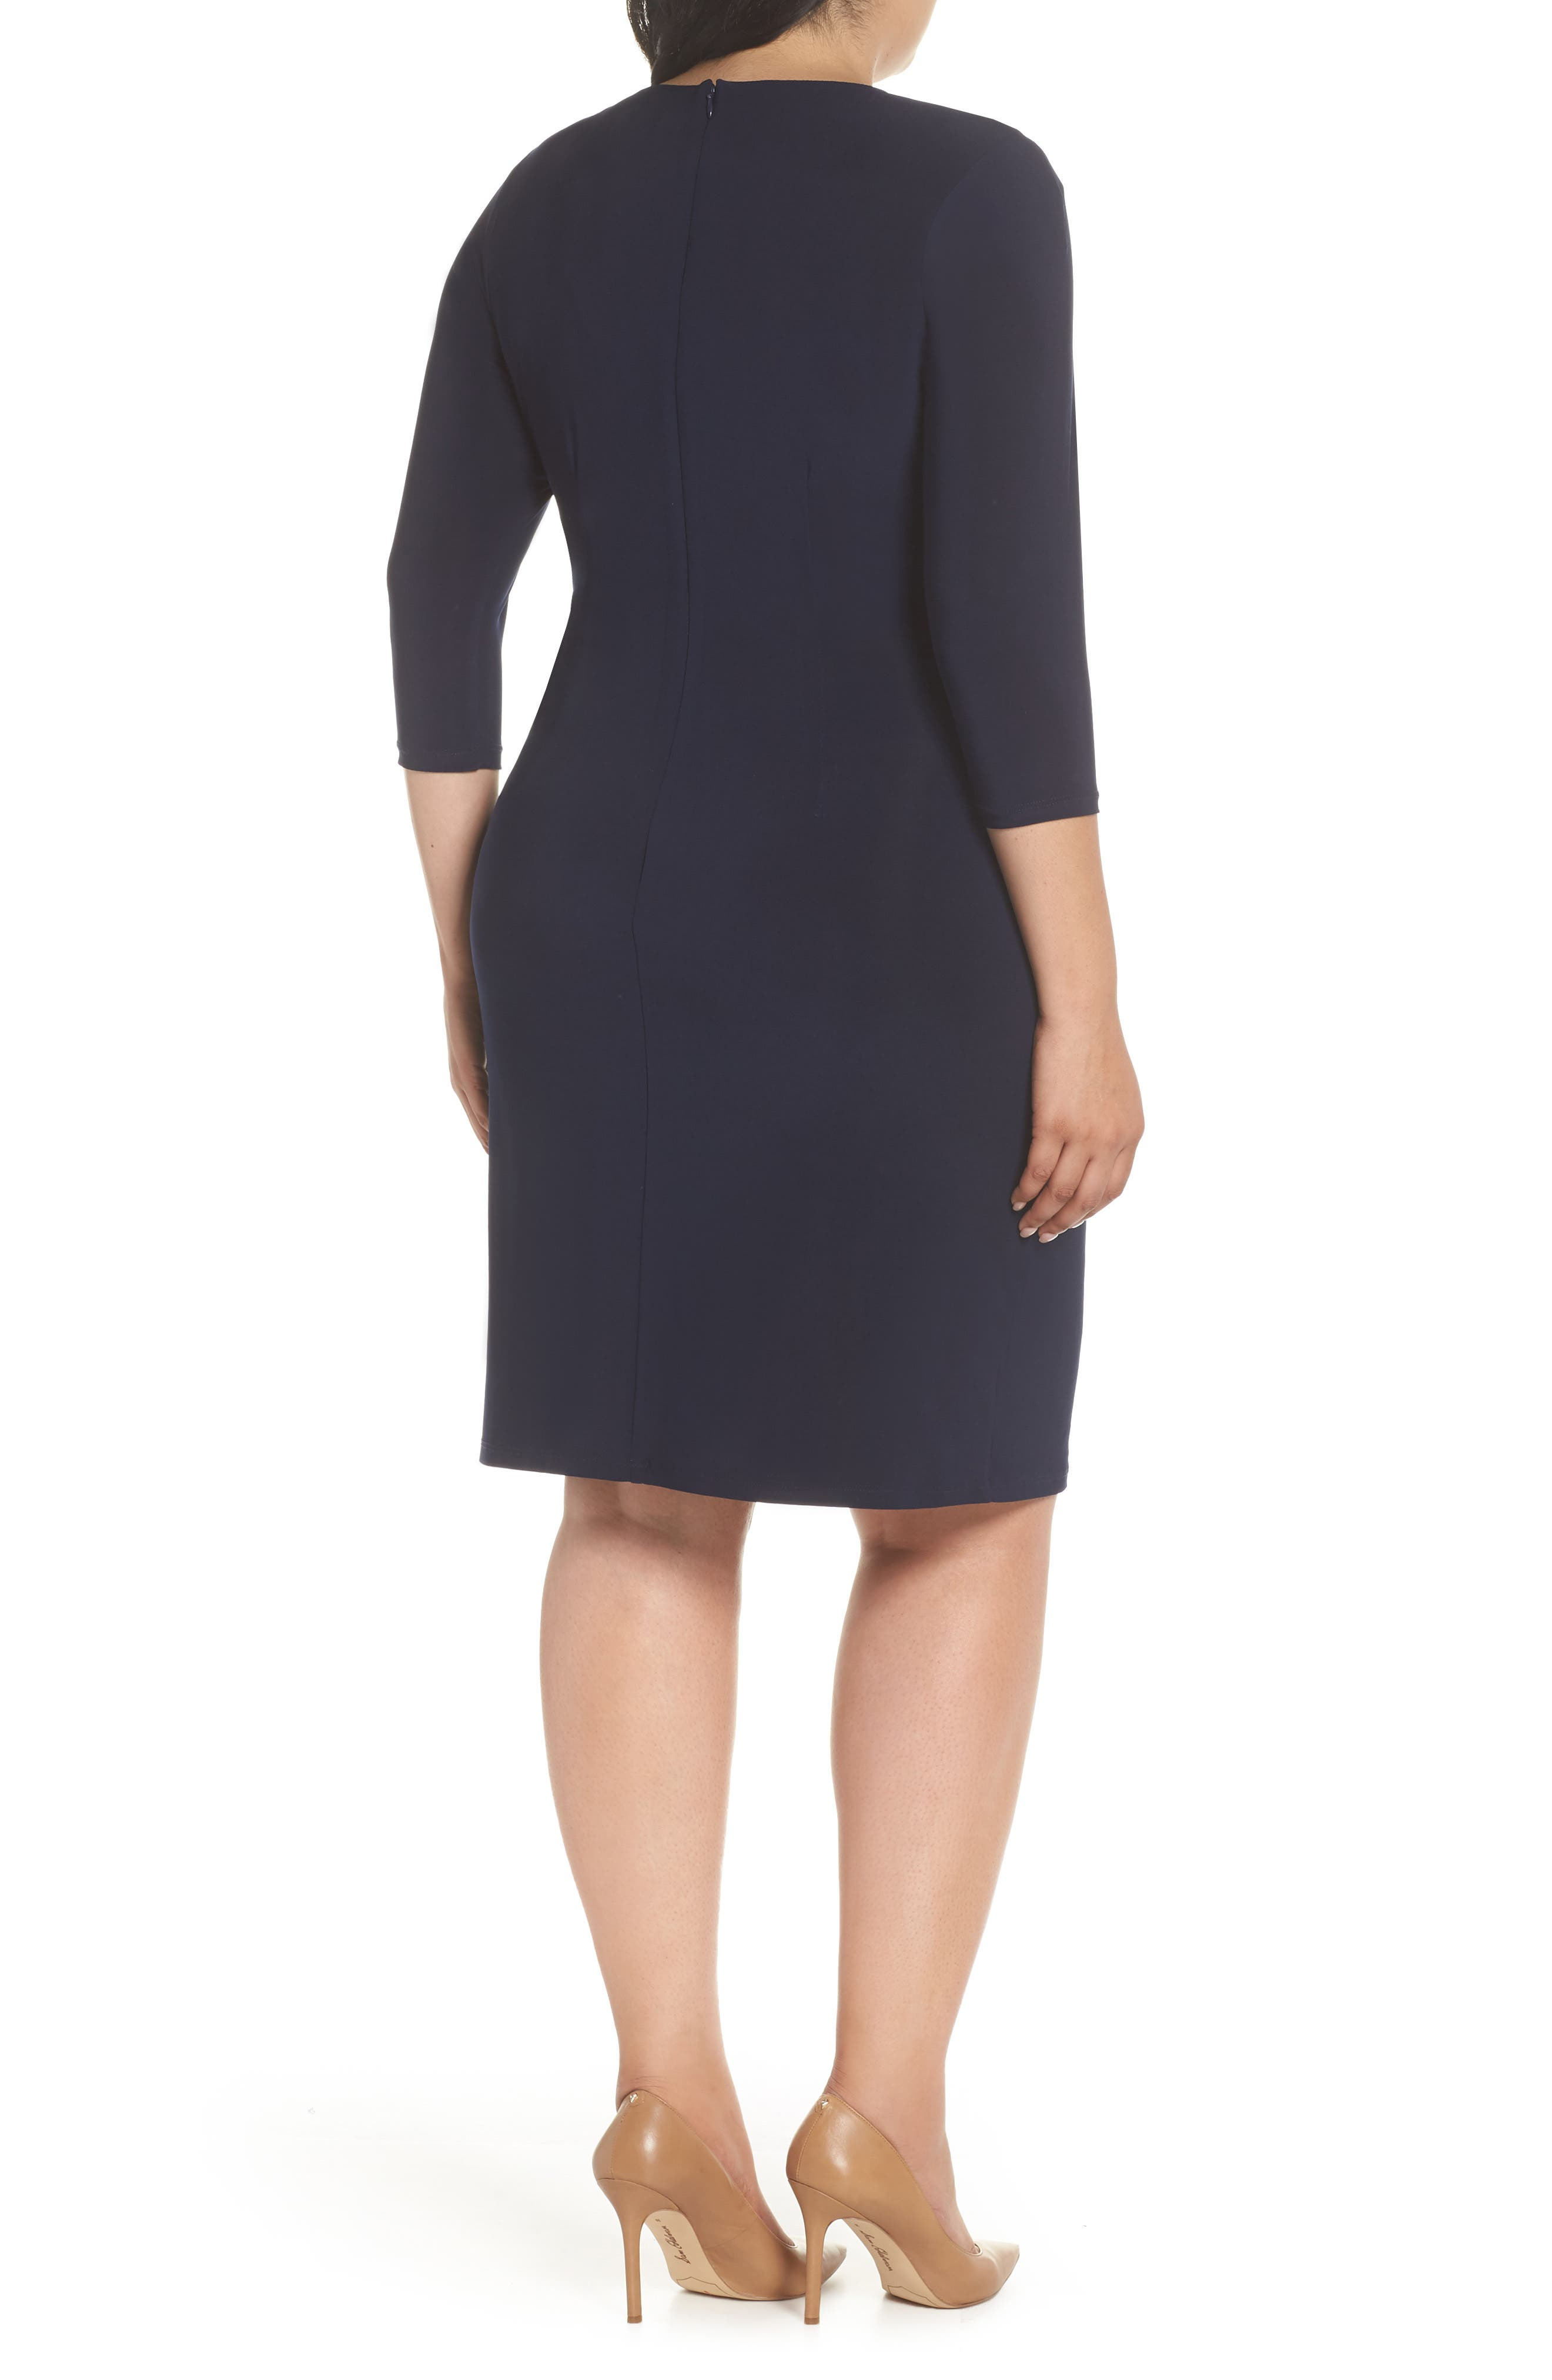 ELIZA J, Ruched Waist Sheath Dress, Alternate thumbnail 2, color, NAVY